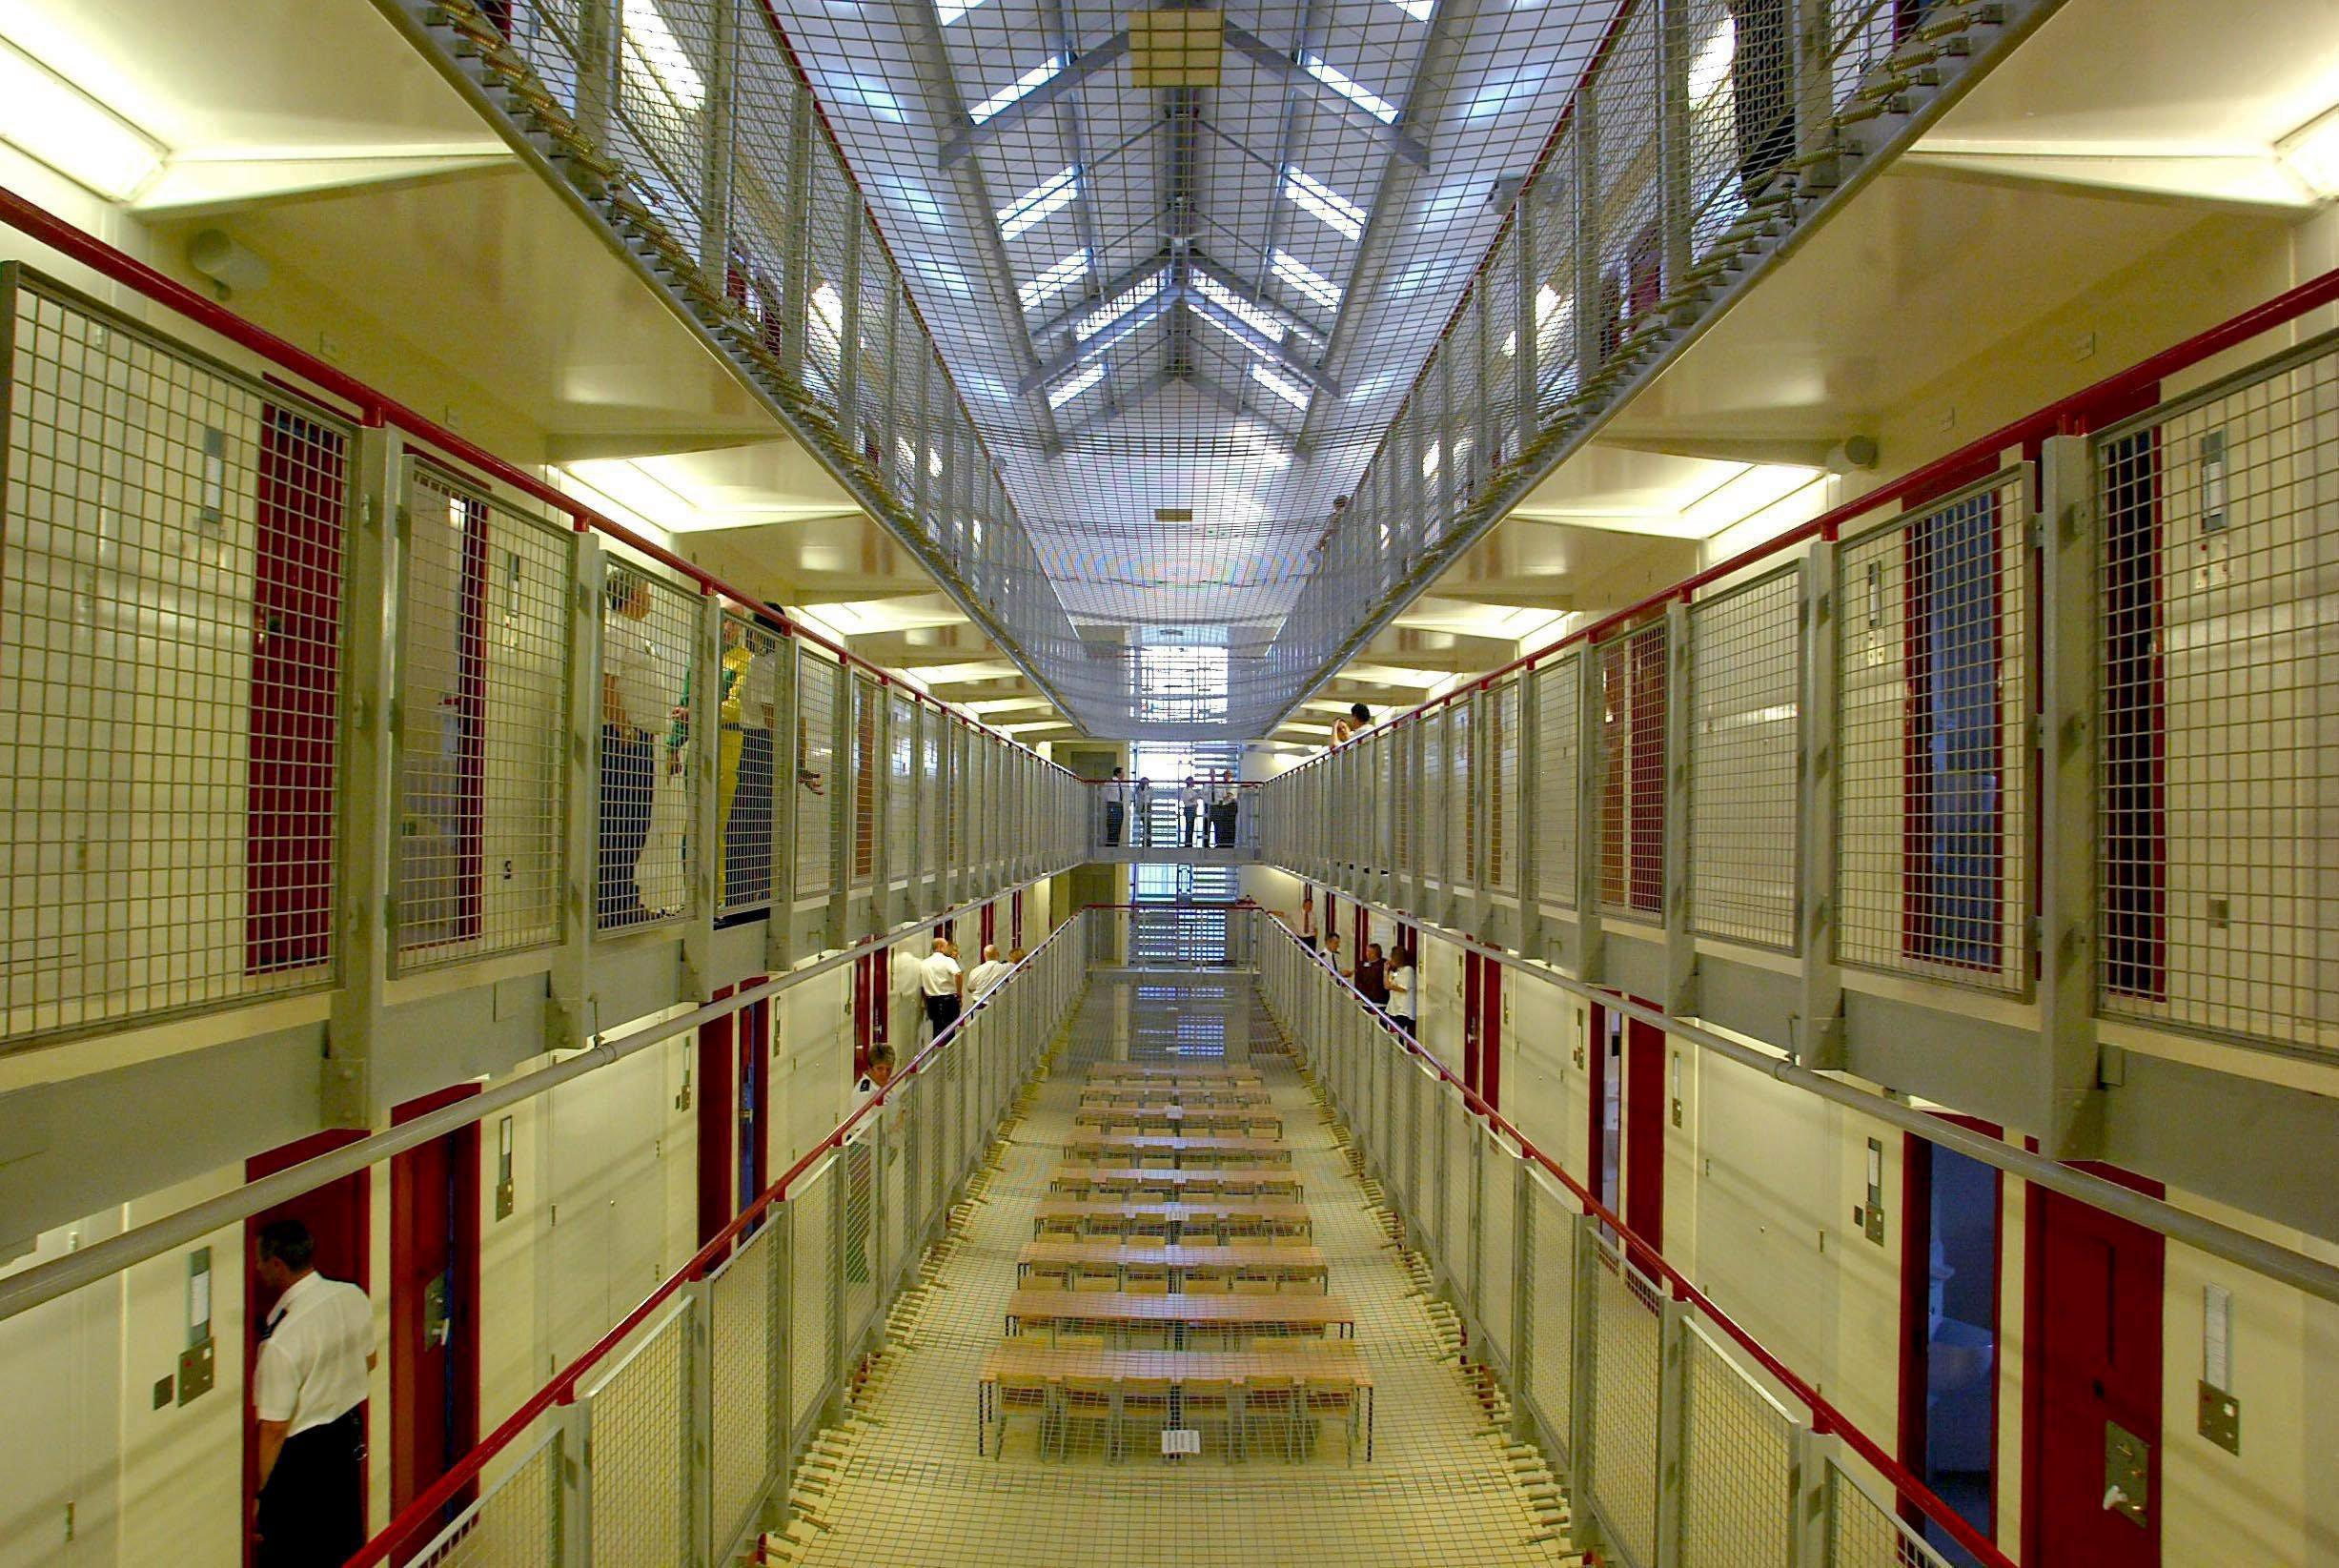 Eight gangs in fight to run the drugs trade in Britain's most dangerous prison HMP Birmingham